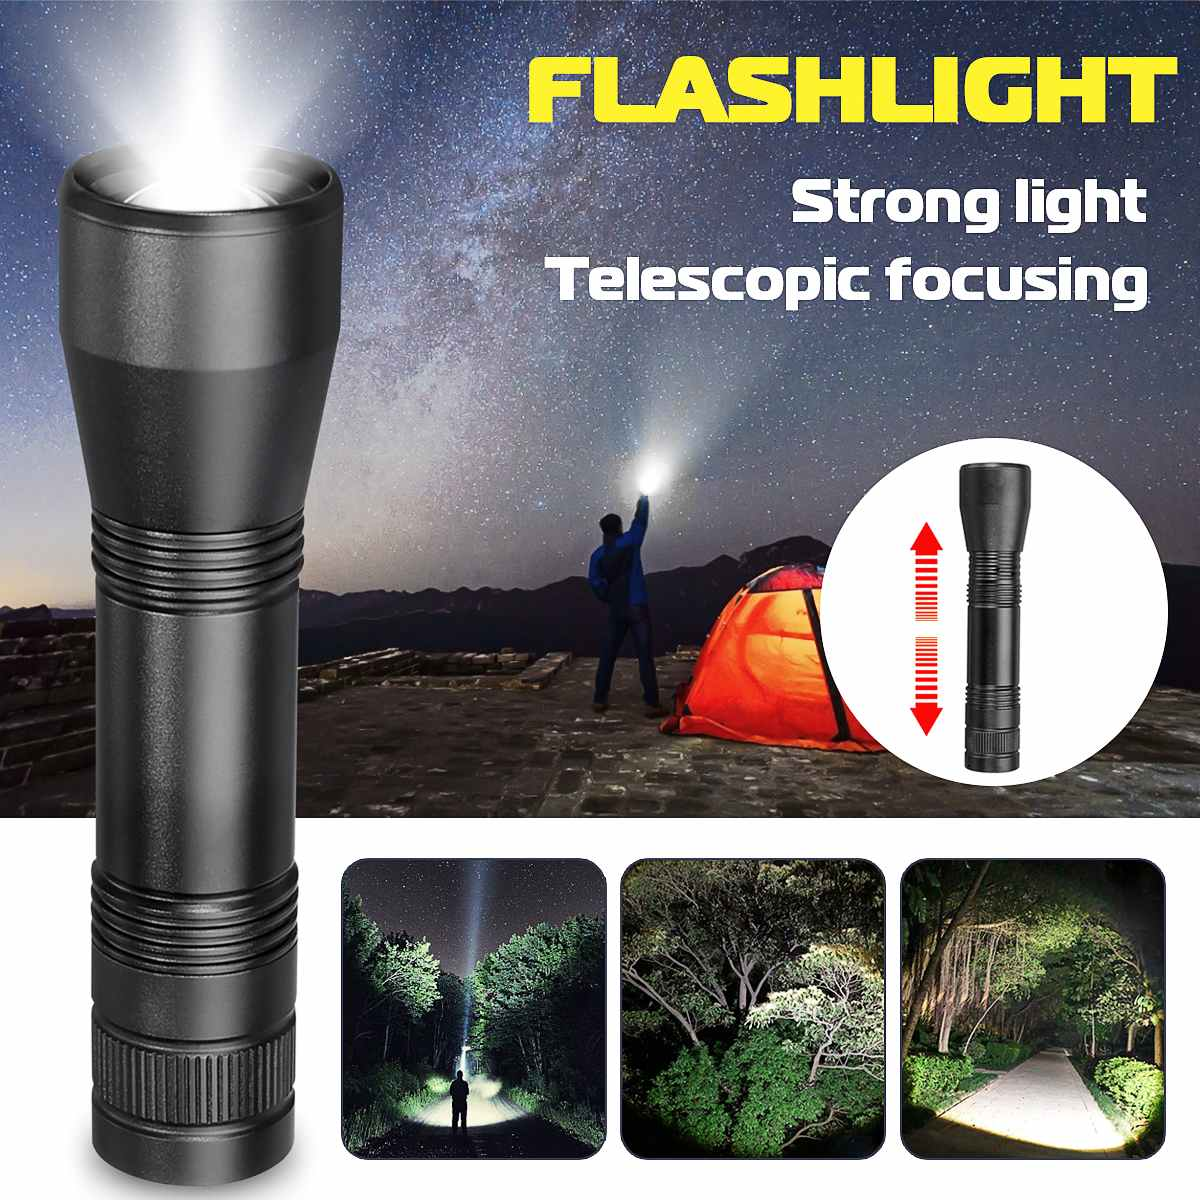 Strong LED Flashlight Bright Torches T6/L2 Zoom-able Home Outdoor Camping Bicycle Light 18650 Rechargeable Hand Light Waterproof